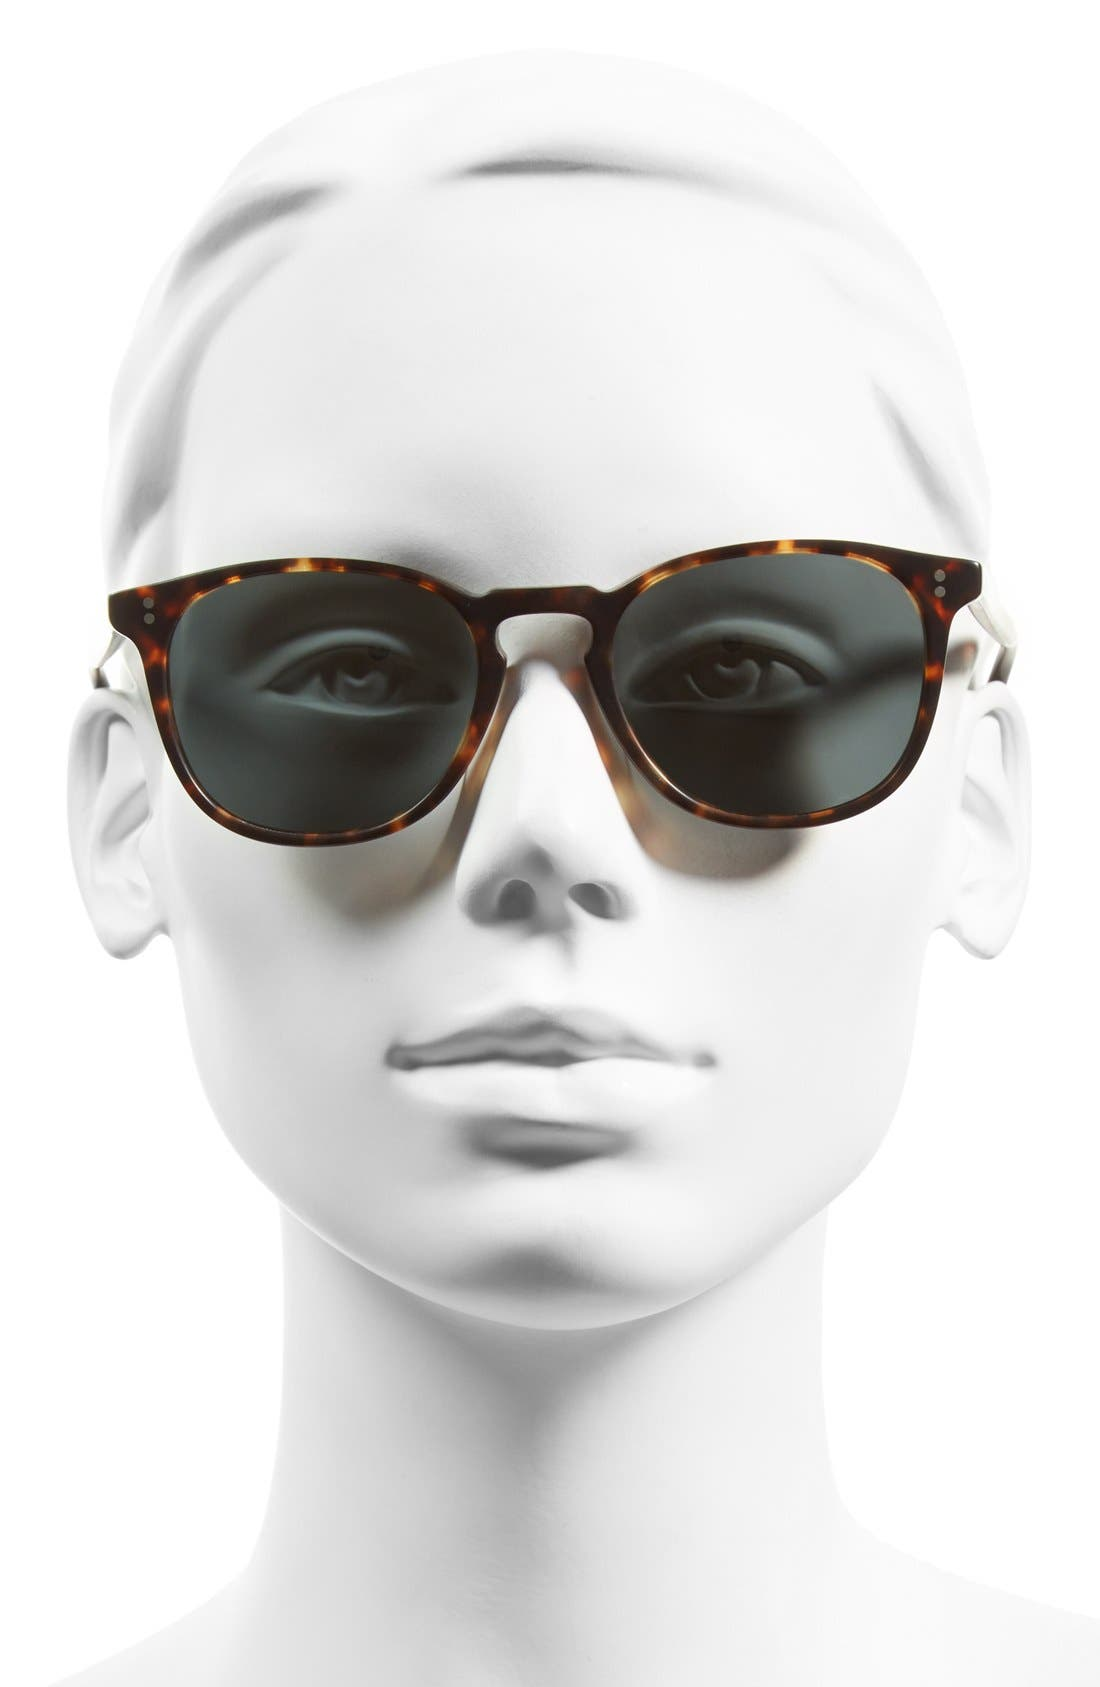 'Finley' 51mm Polarized Sunglasses,                             Alternate thumbnail 2, color,                             Brown/ Tortoise/ Gold Polar